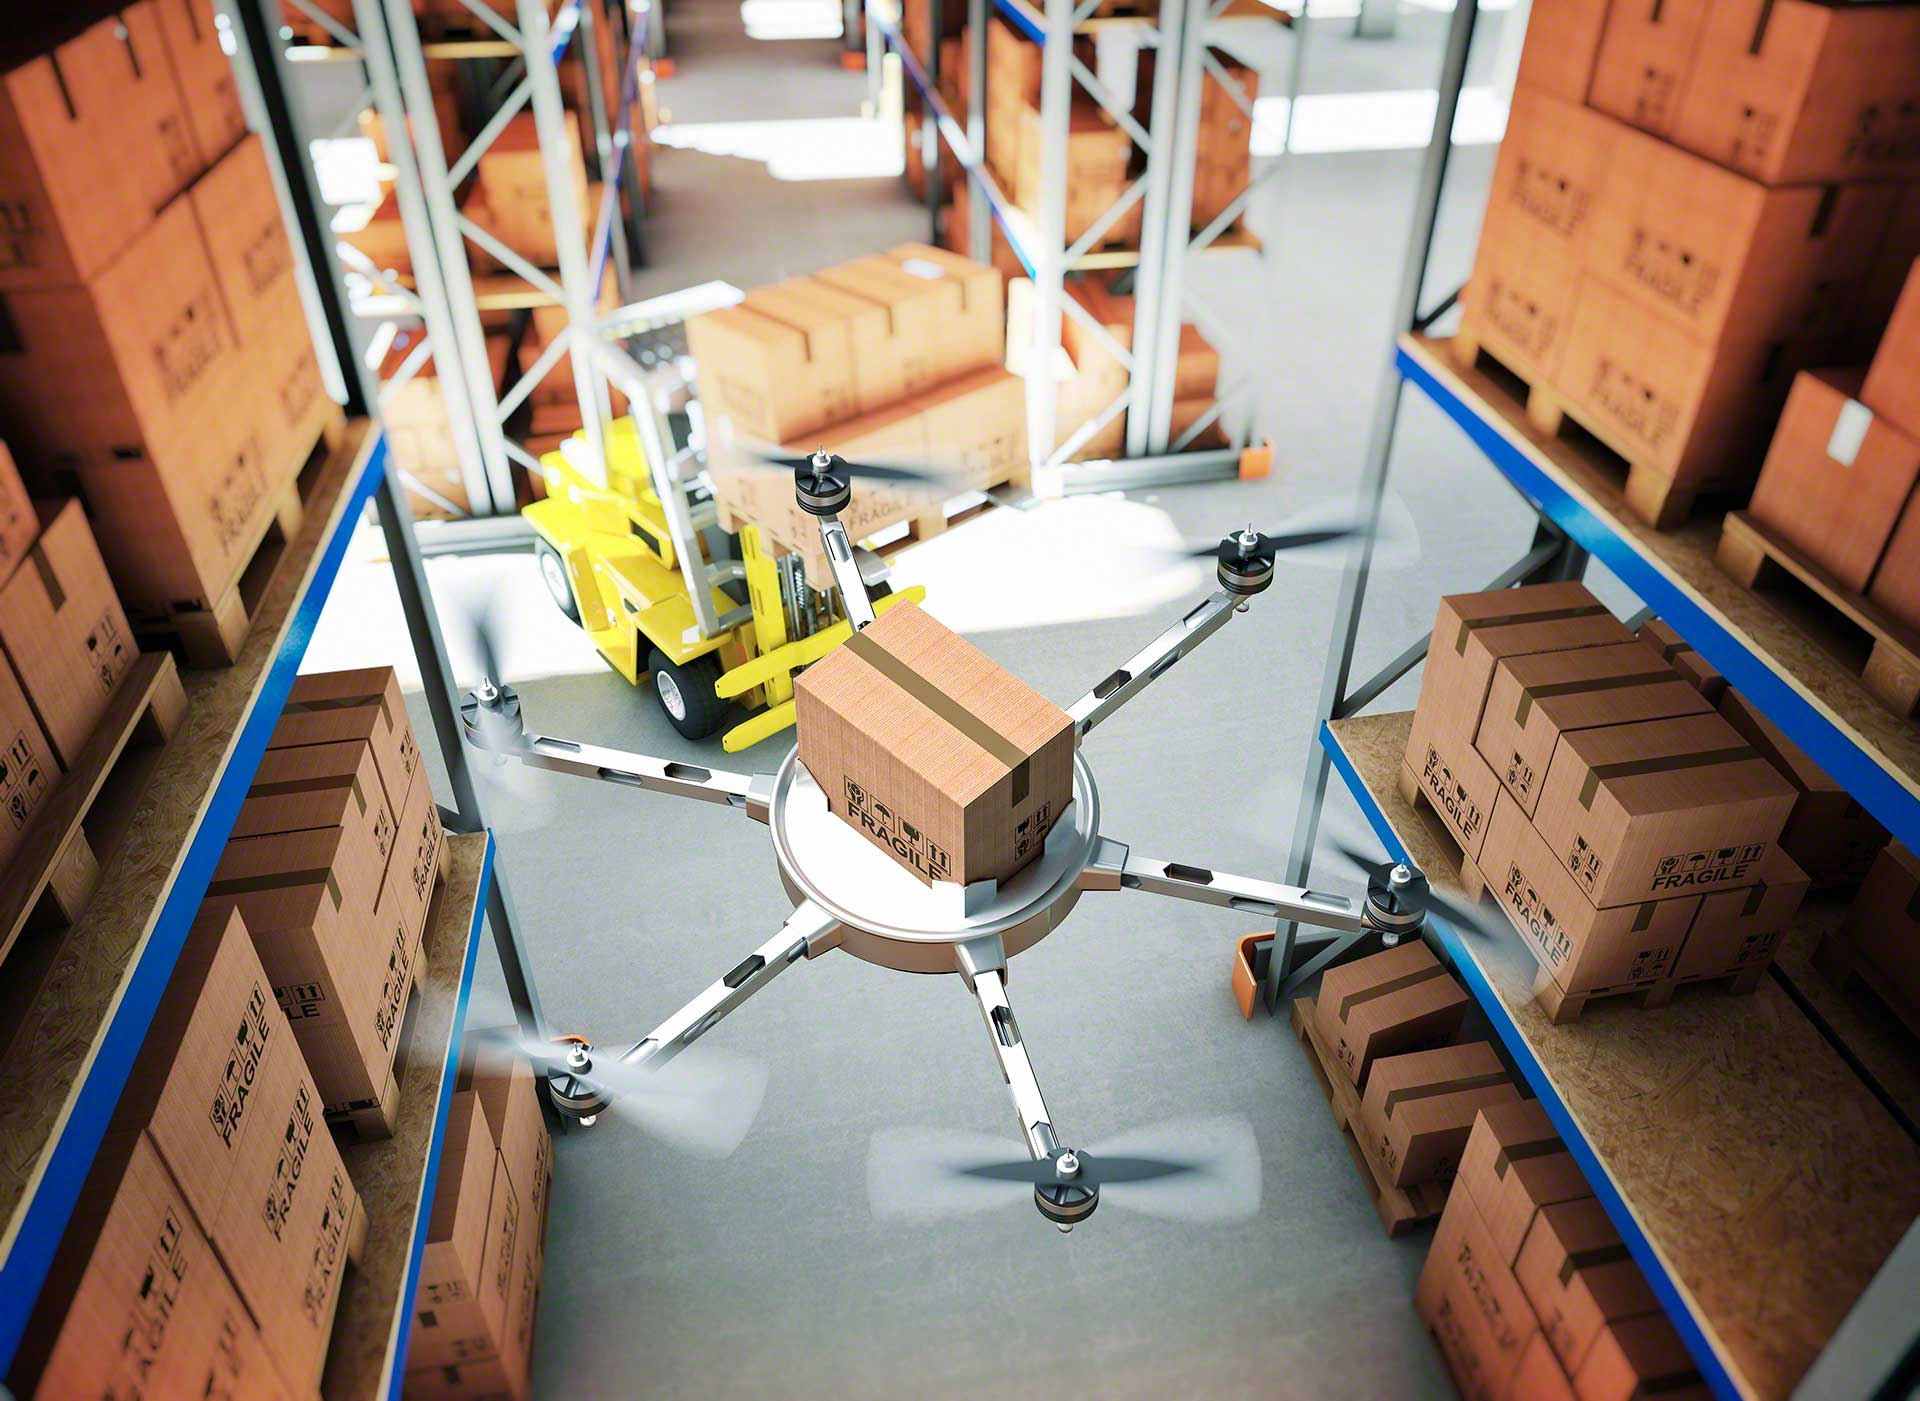 In warehouses, drones could manage inventory, locating each item